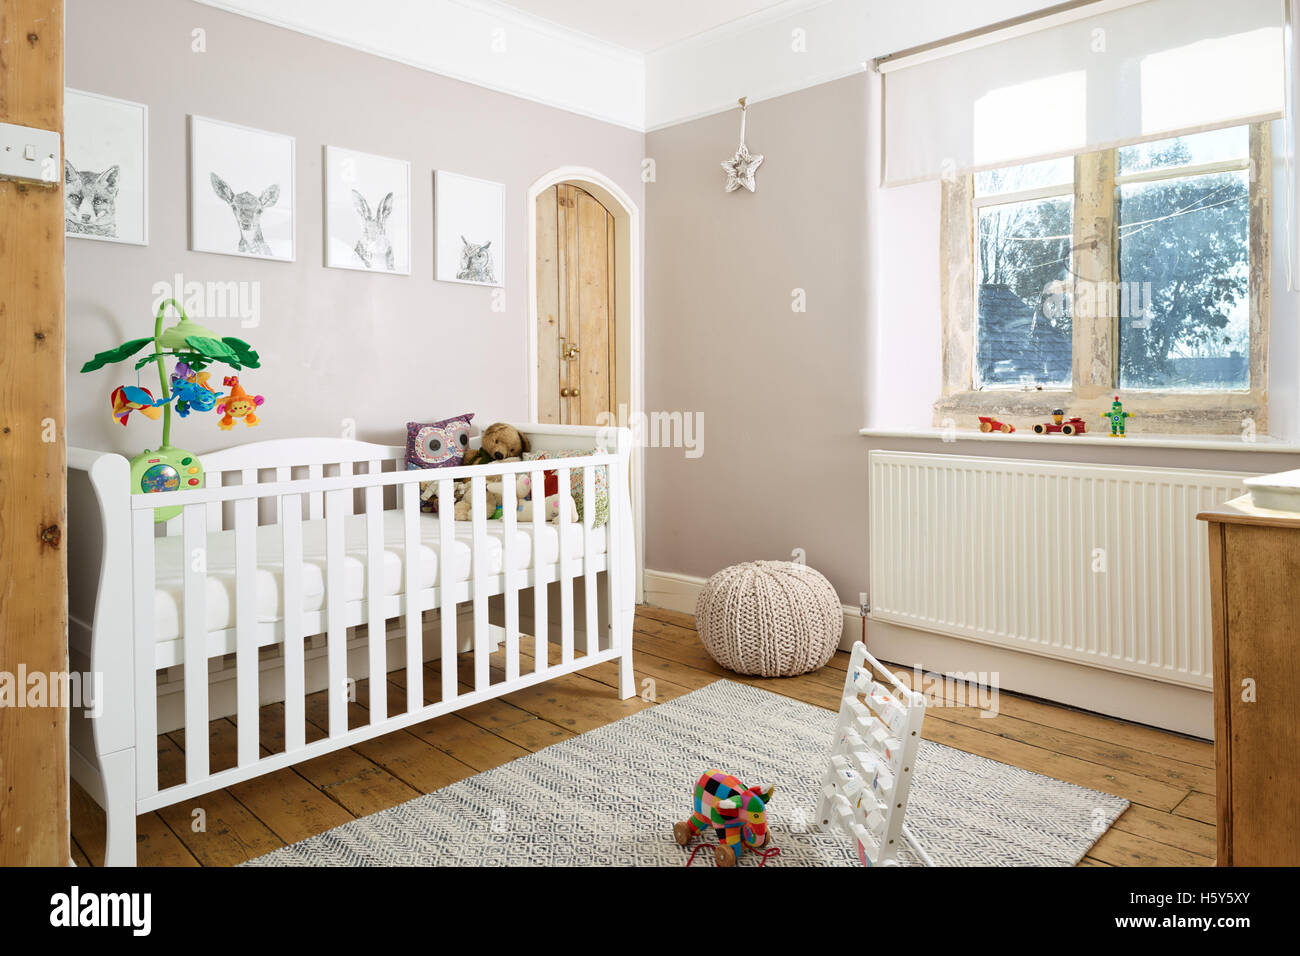 A cot bed in a traditional child's nursery in a modernised British Victorian home - Stock Image